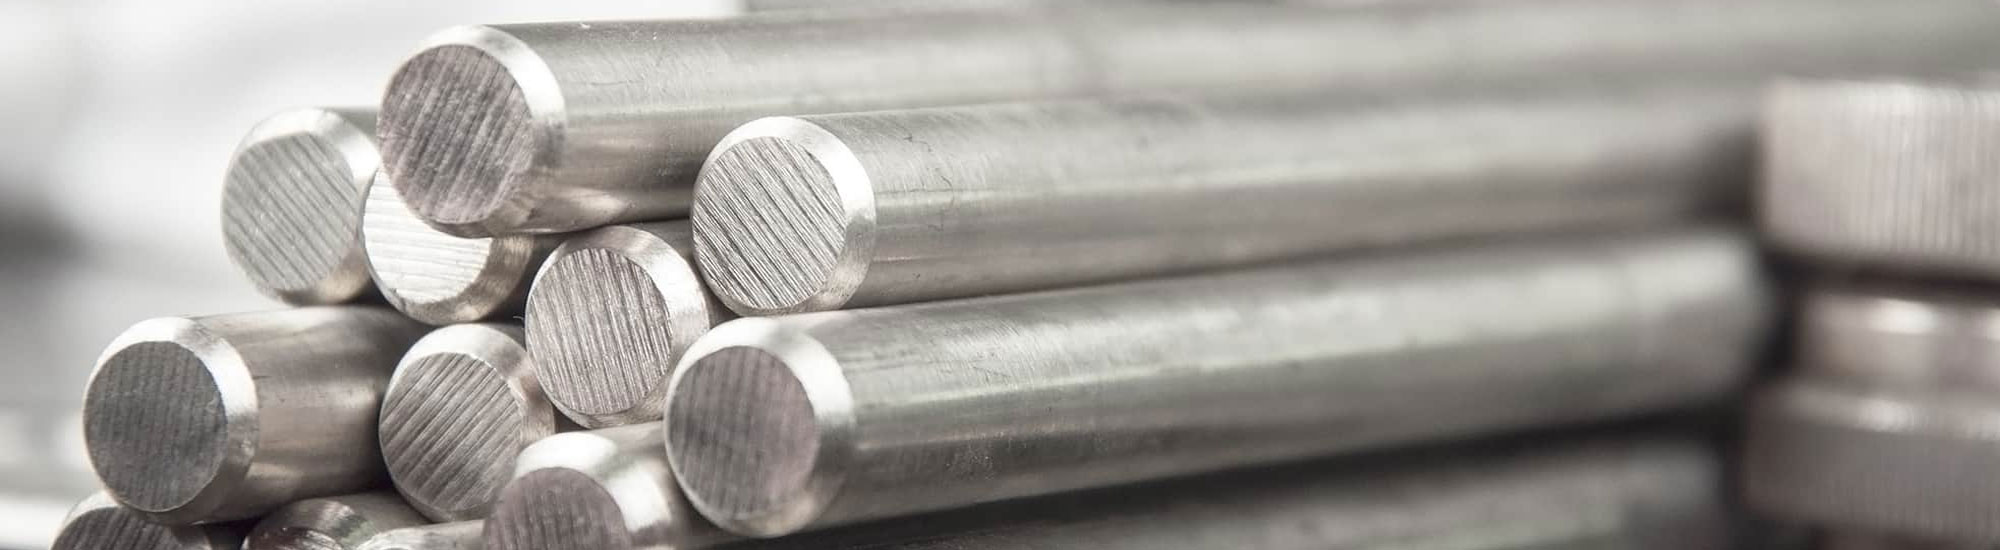 Nickel Alloy Round Bar supplier